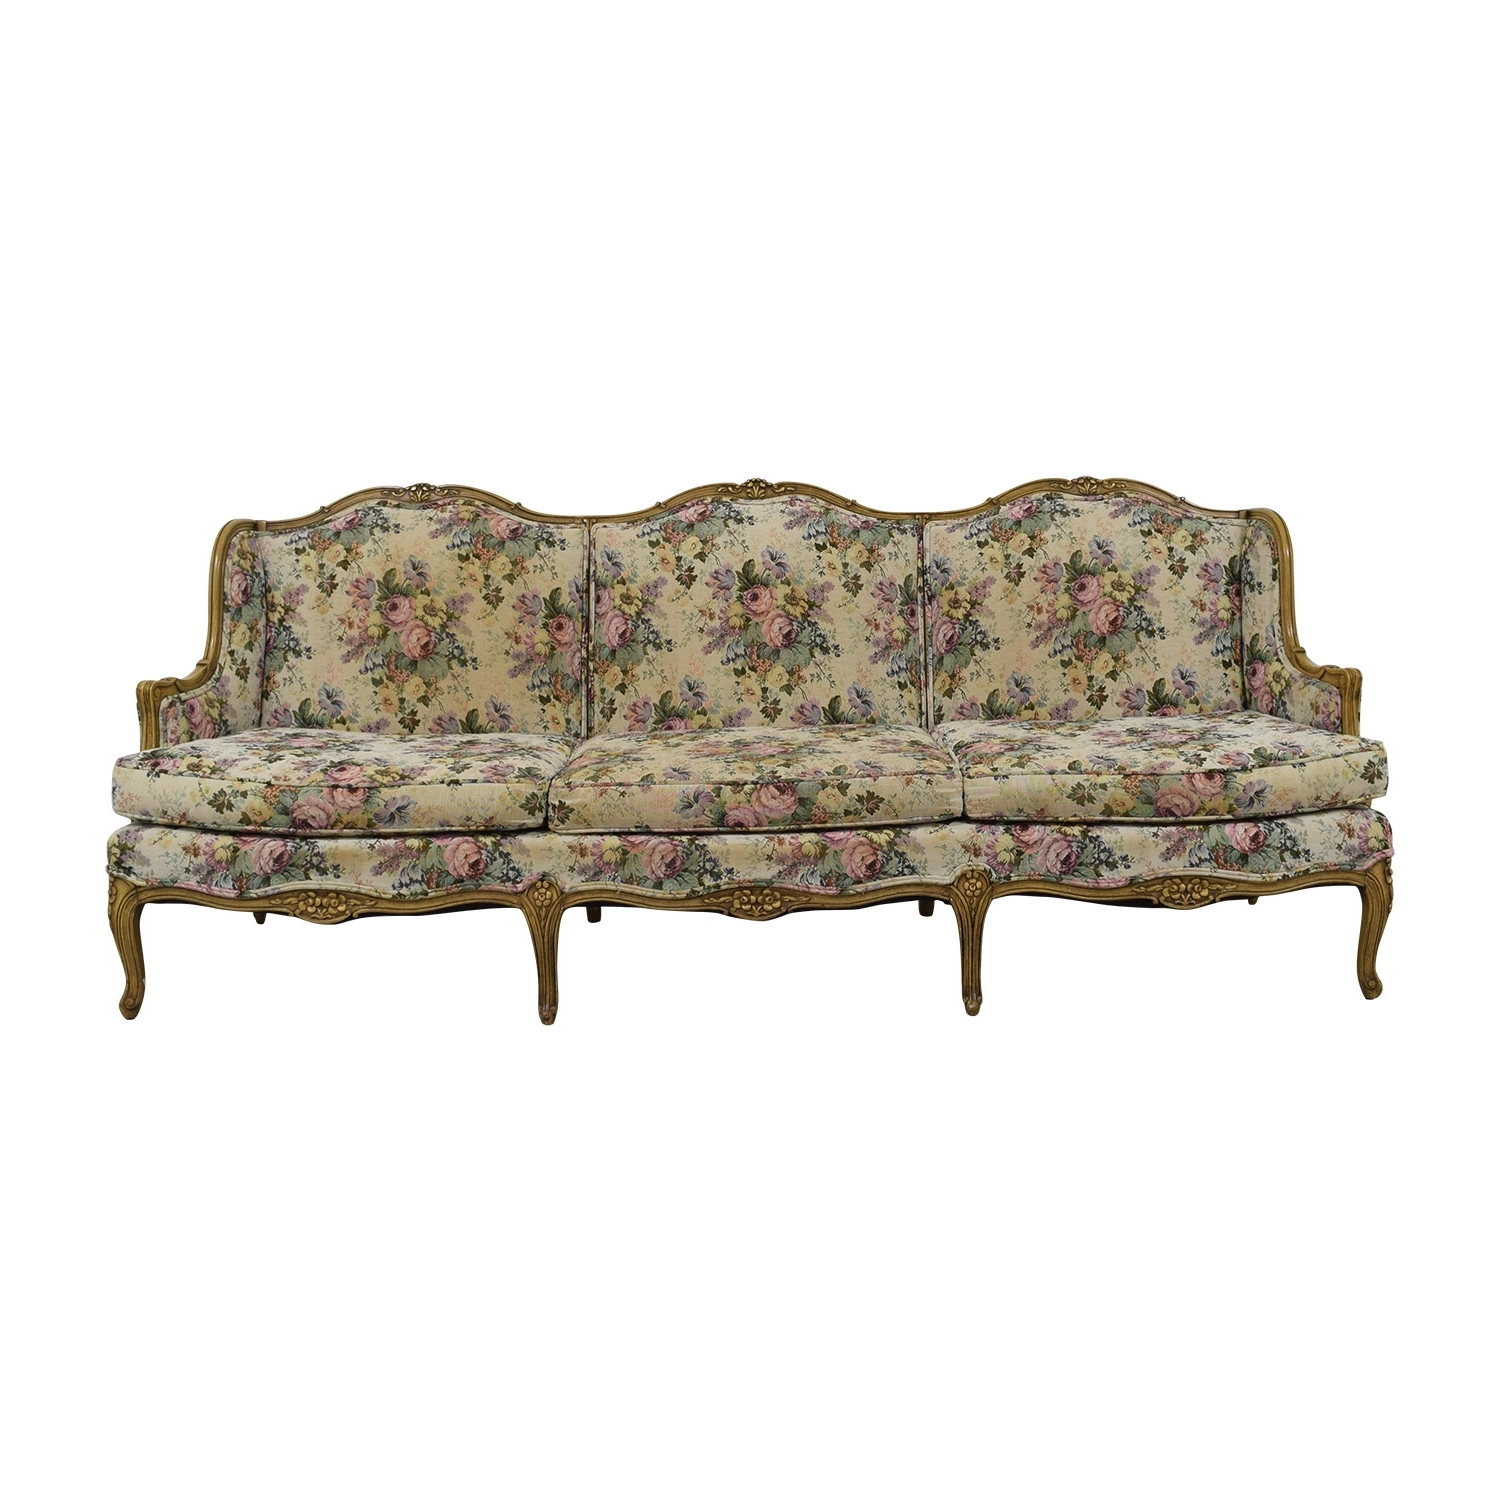 [%86% Off – Vintage Floral Sofa / Sofas Pertaining To Fashionable Vintage Sofas|Vintage Sofas Inside Favorite 86% Off – Vintage Floral Sofa / Sofas|Popular Vintage Sofas Regarding 86% Off – Vintage Floral Sofa / Sofas|Famous 86% Off – Vintage Floral Sofa / Sofas Regarding Vintage Sofas%] (View 8 of 15)